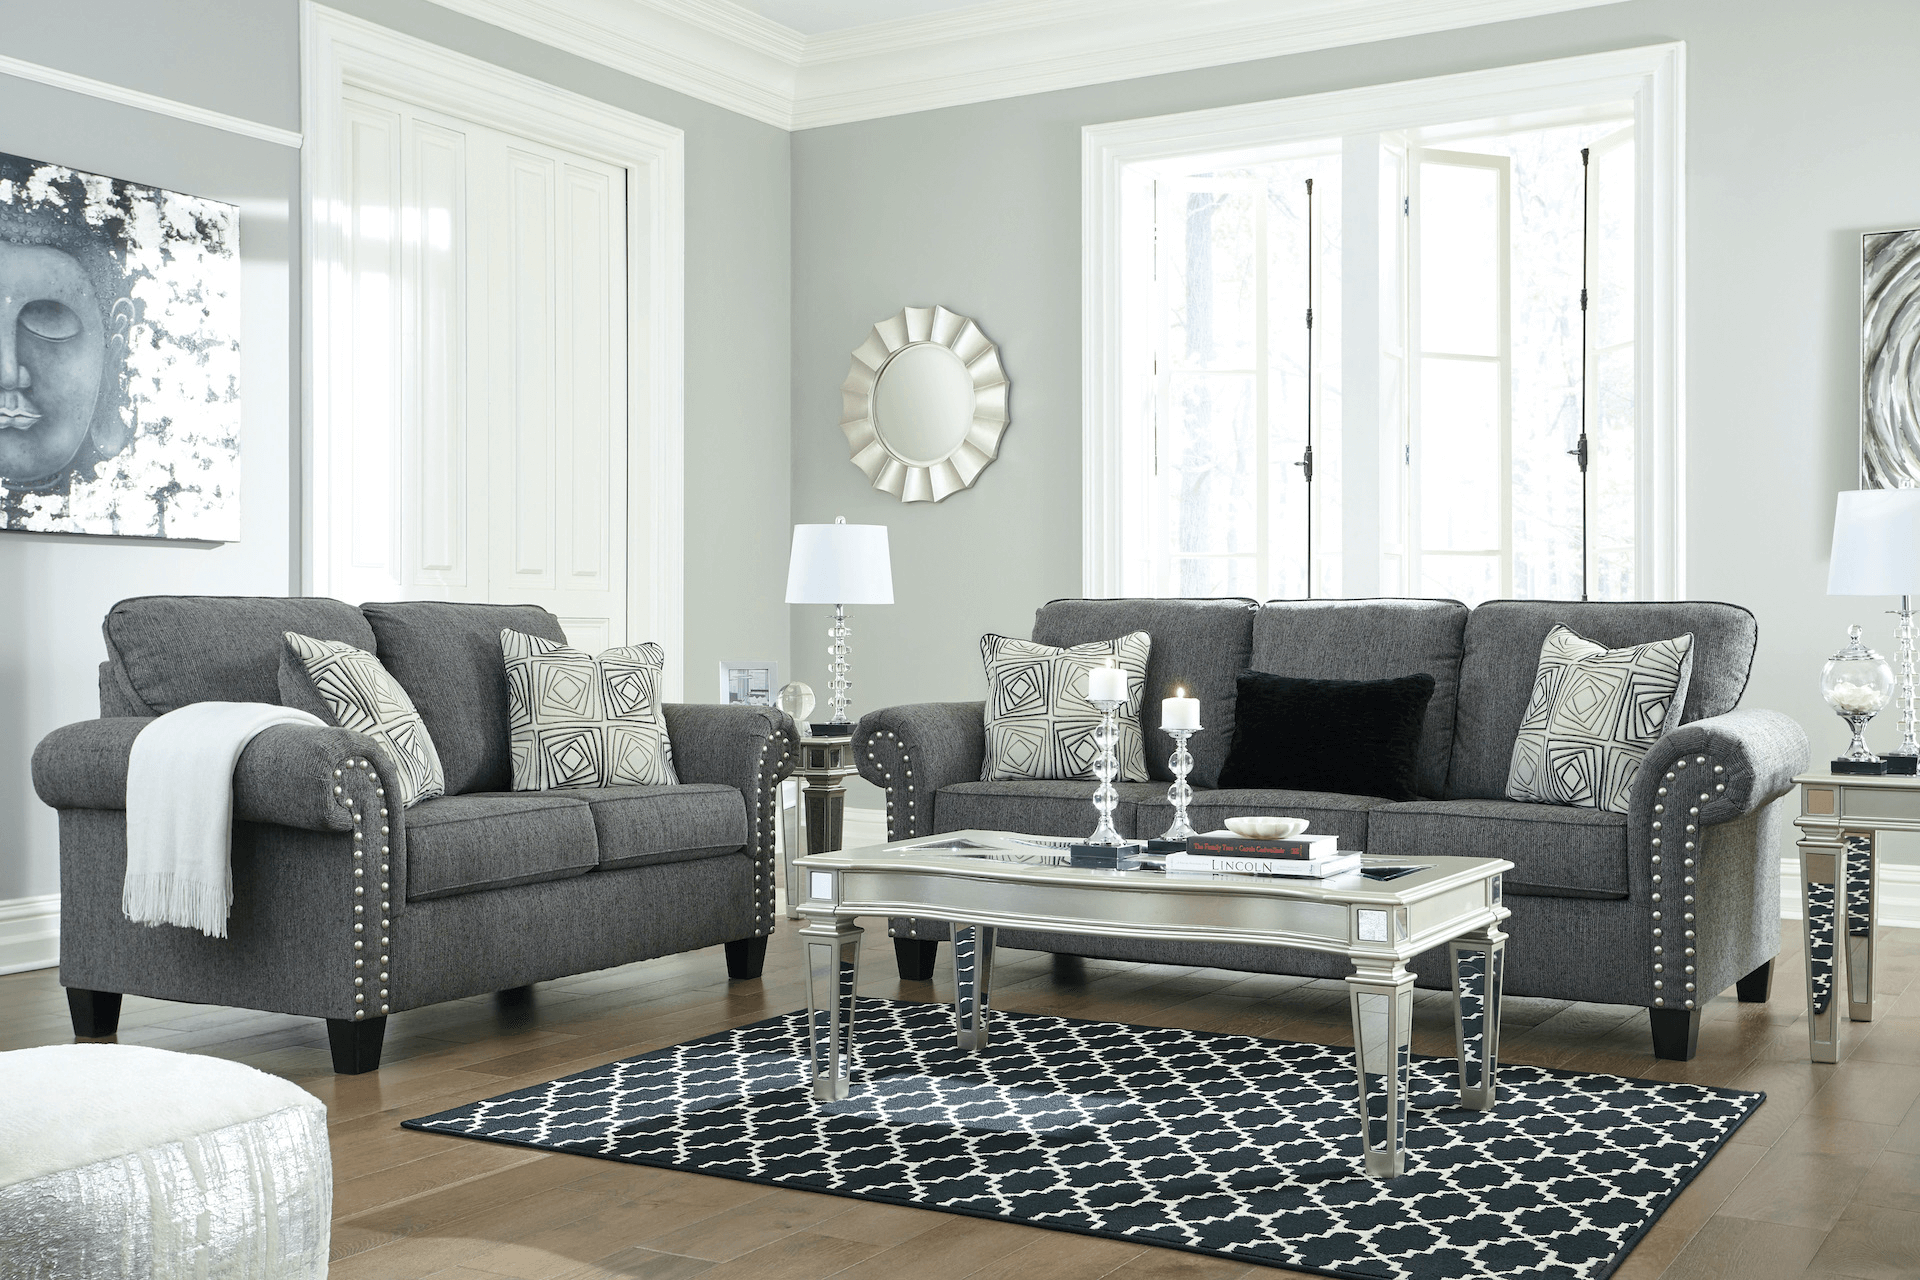 Atlantic_Furniture-Sofa_Sets-78701_w_T099_hi-res